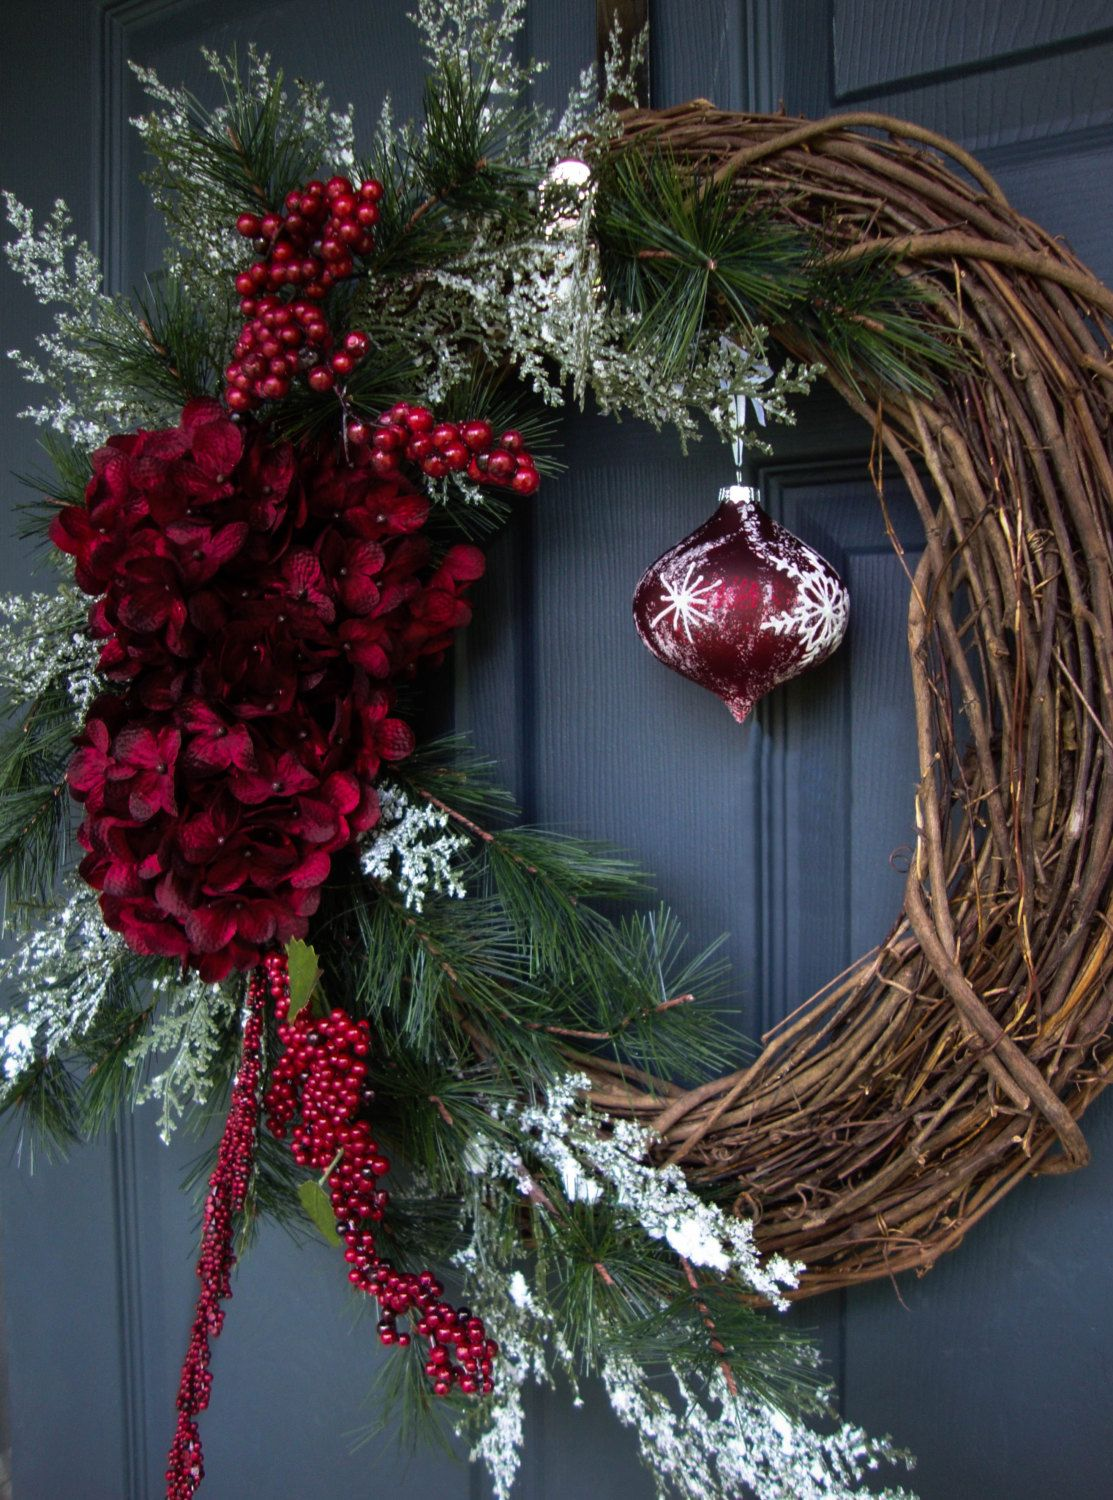 christmas wreaths black friday sale holiday wreath winter wreath decorations wreaths for door etsy wreaths wreath wreaths by - Black Friday Christmas Decoration Deals